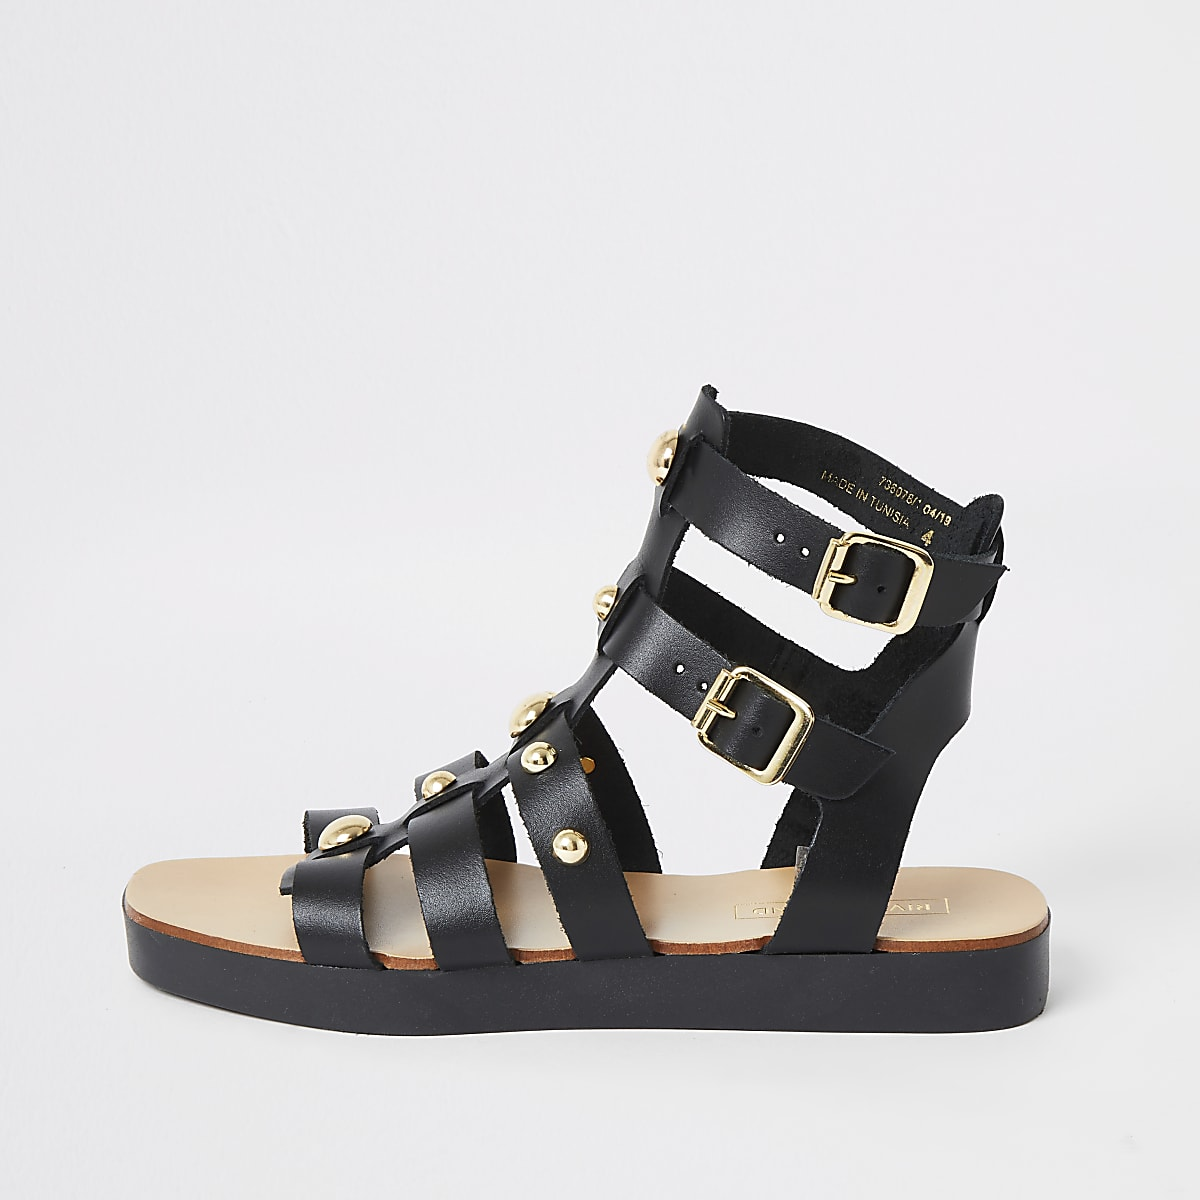 Black leather studded gladiator sandals